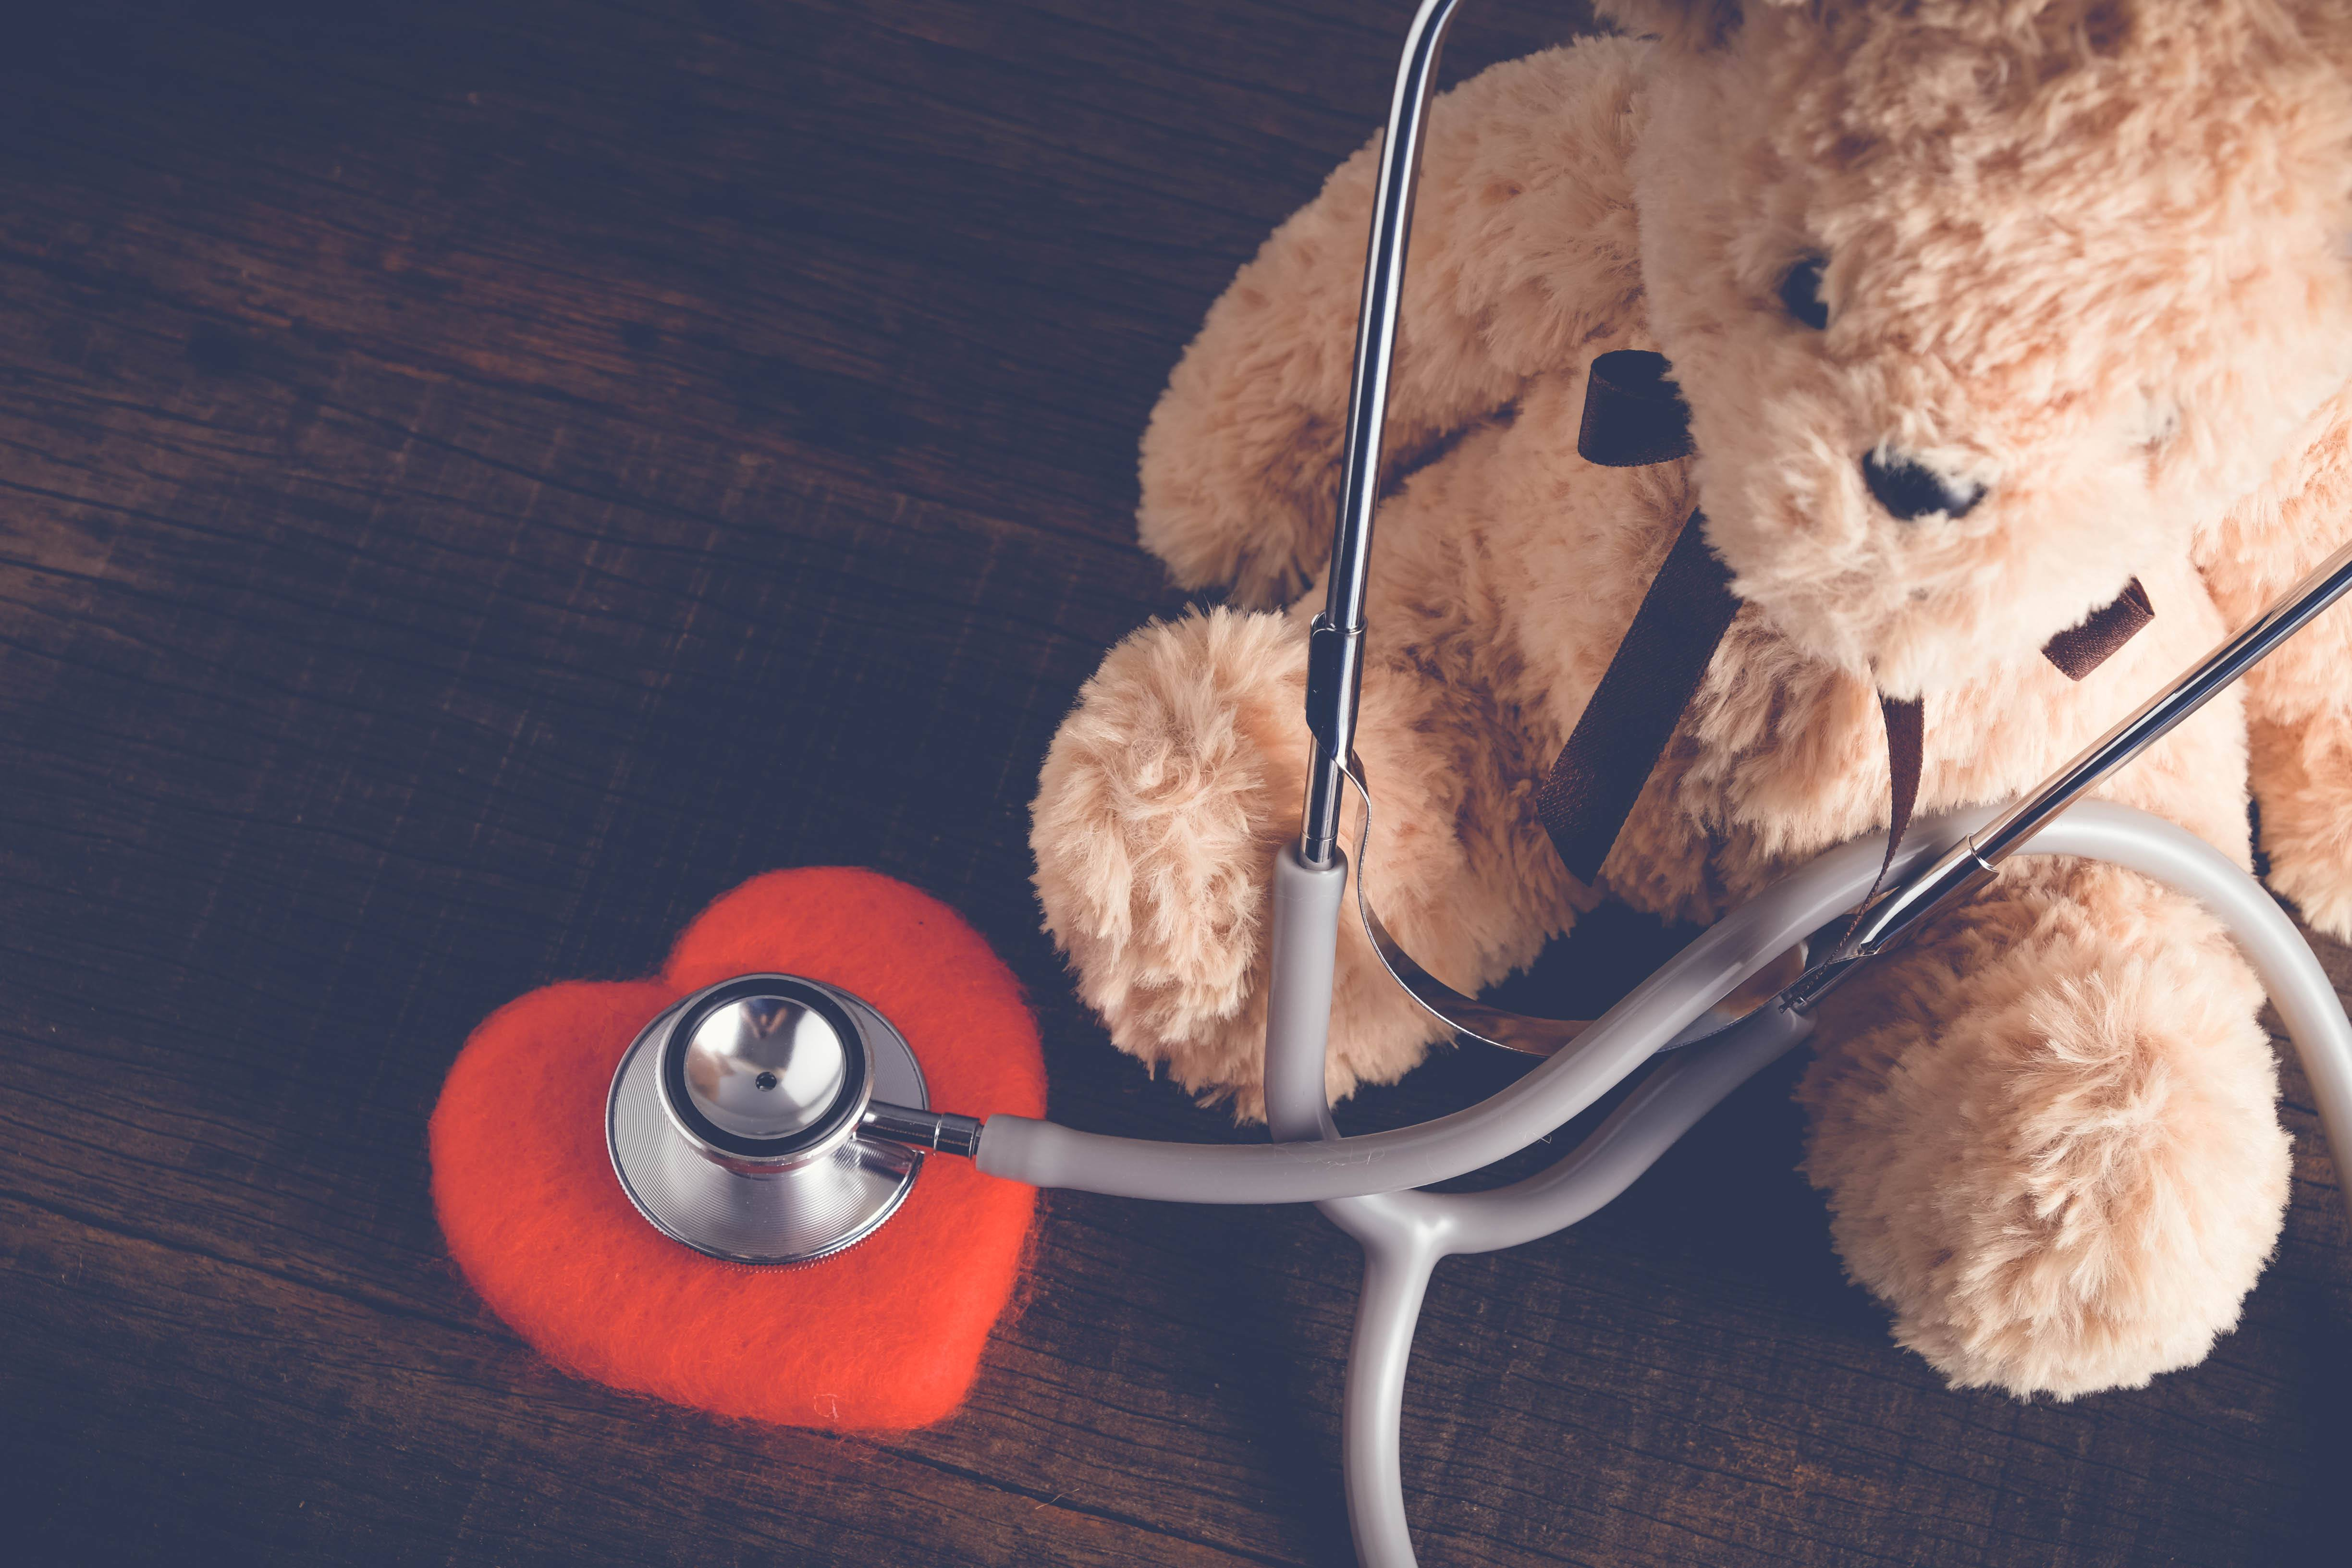 Video Q&A - Children with Congenital Heart Disease